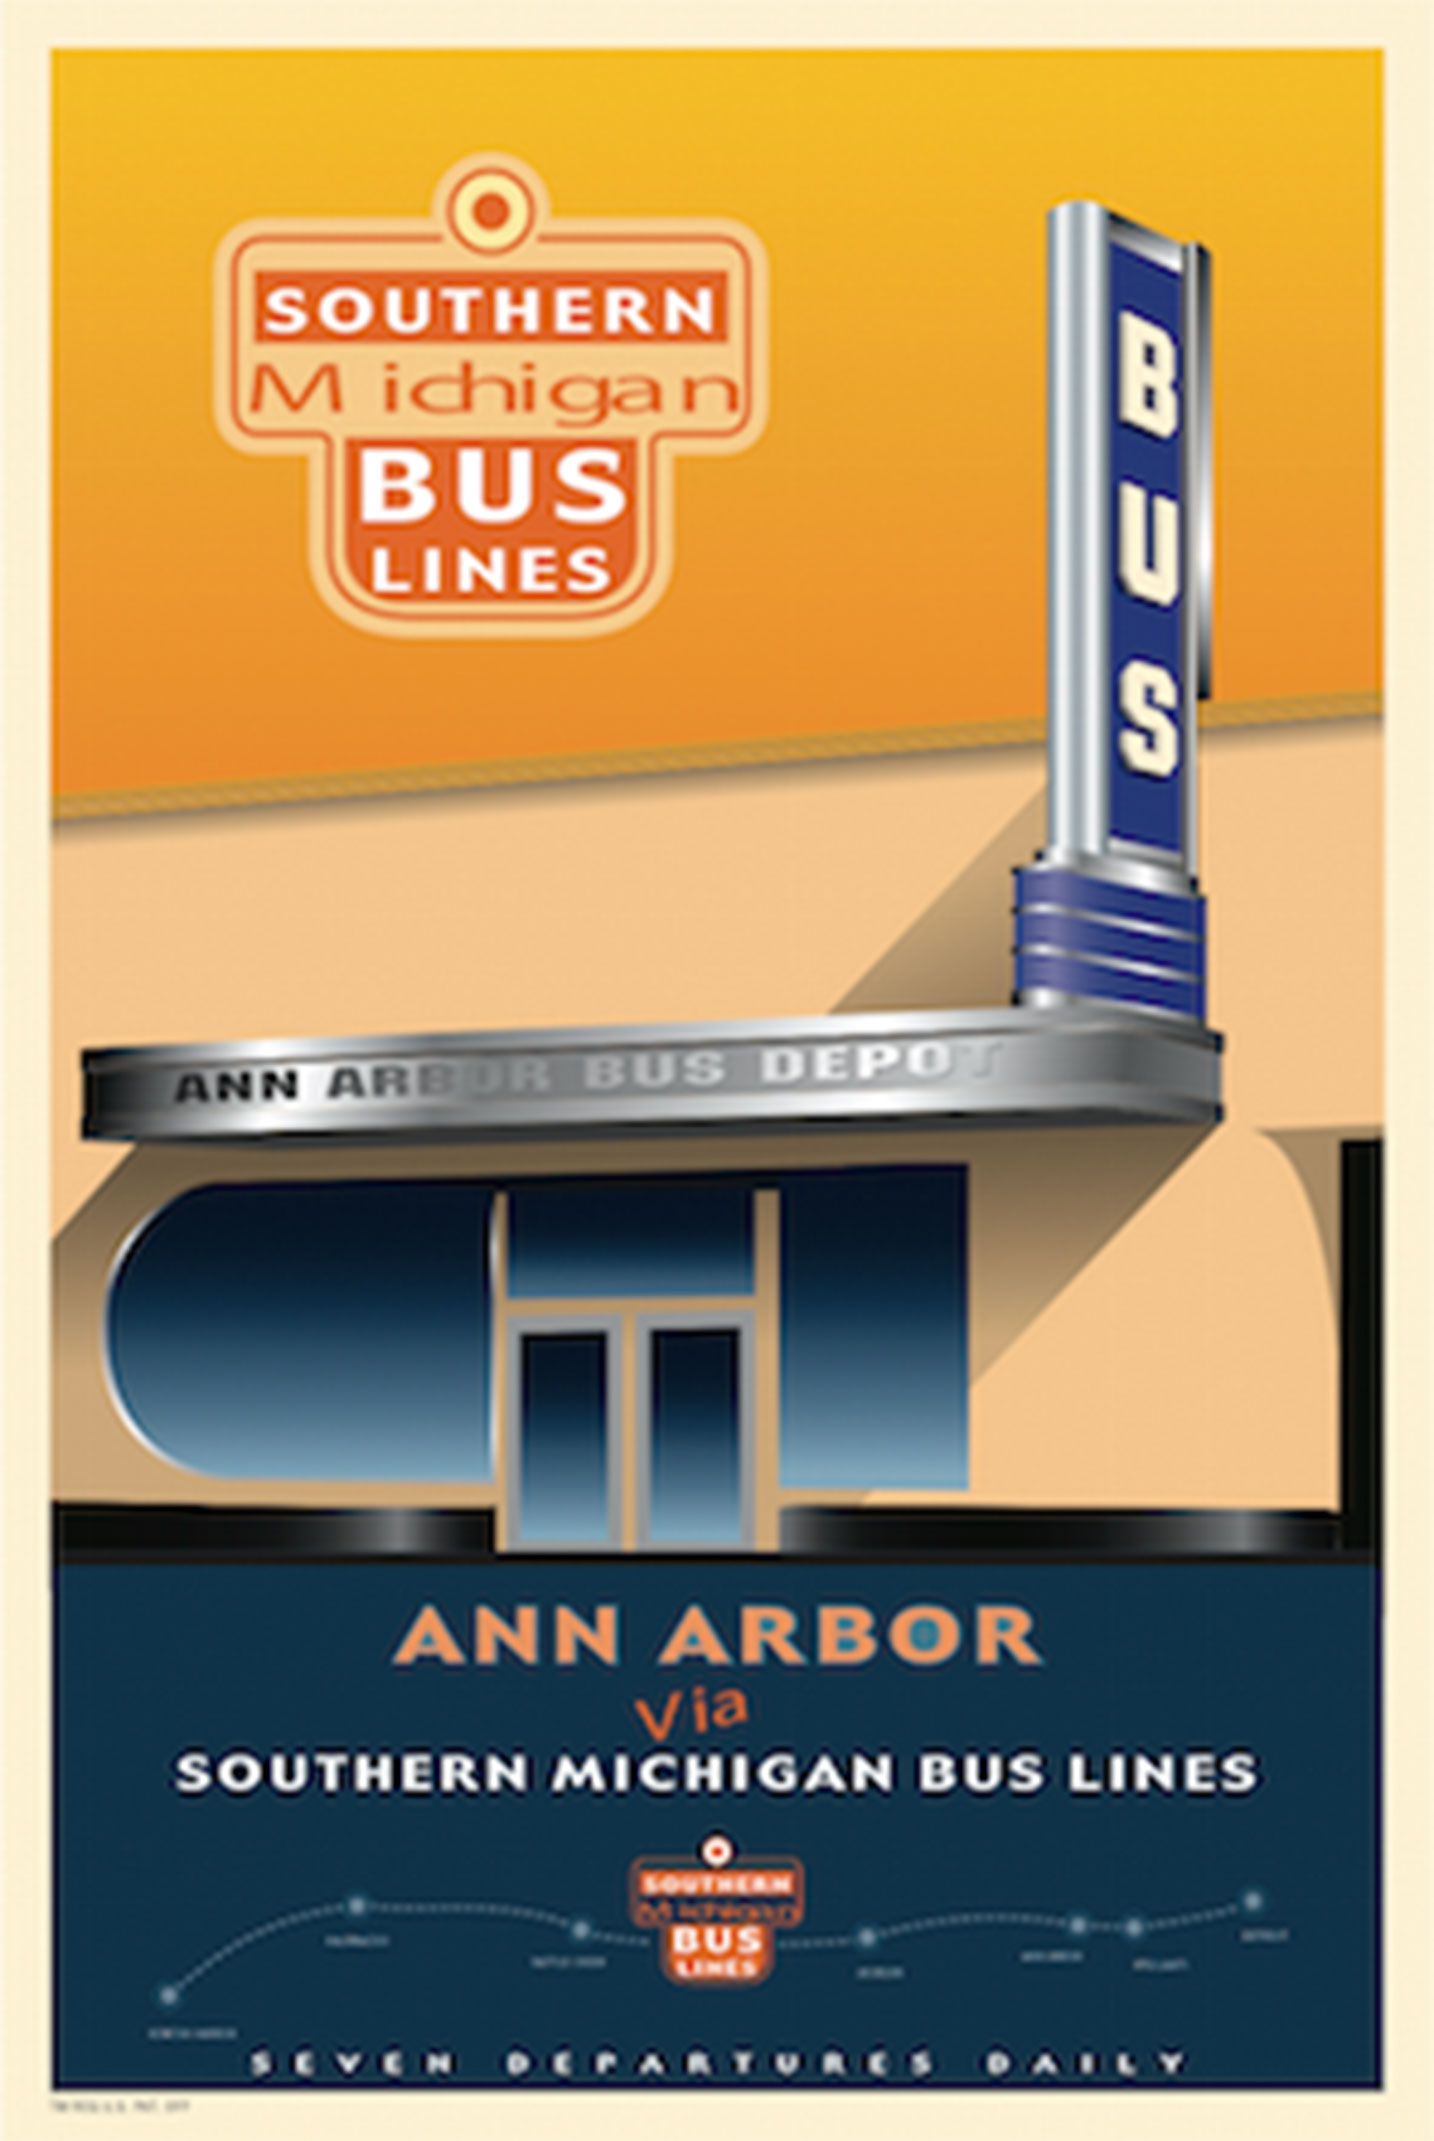 Southern Michigan Bus Lines Ann Arbor Poster